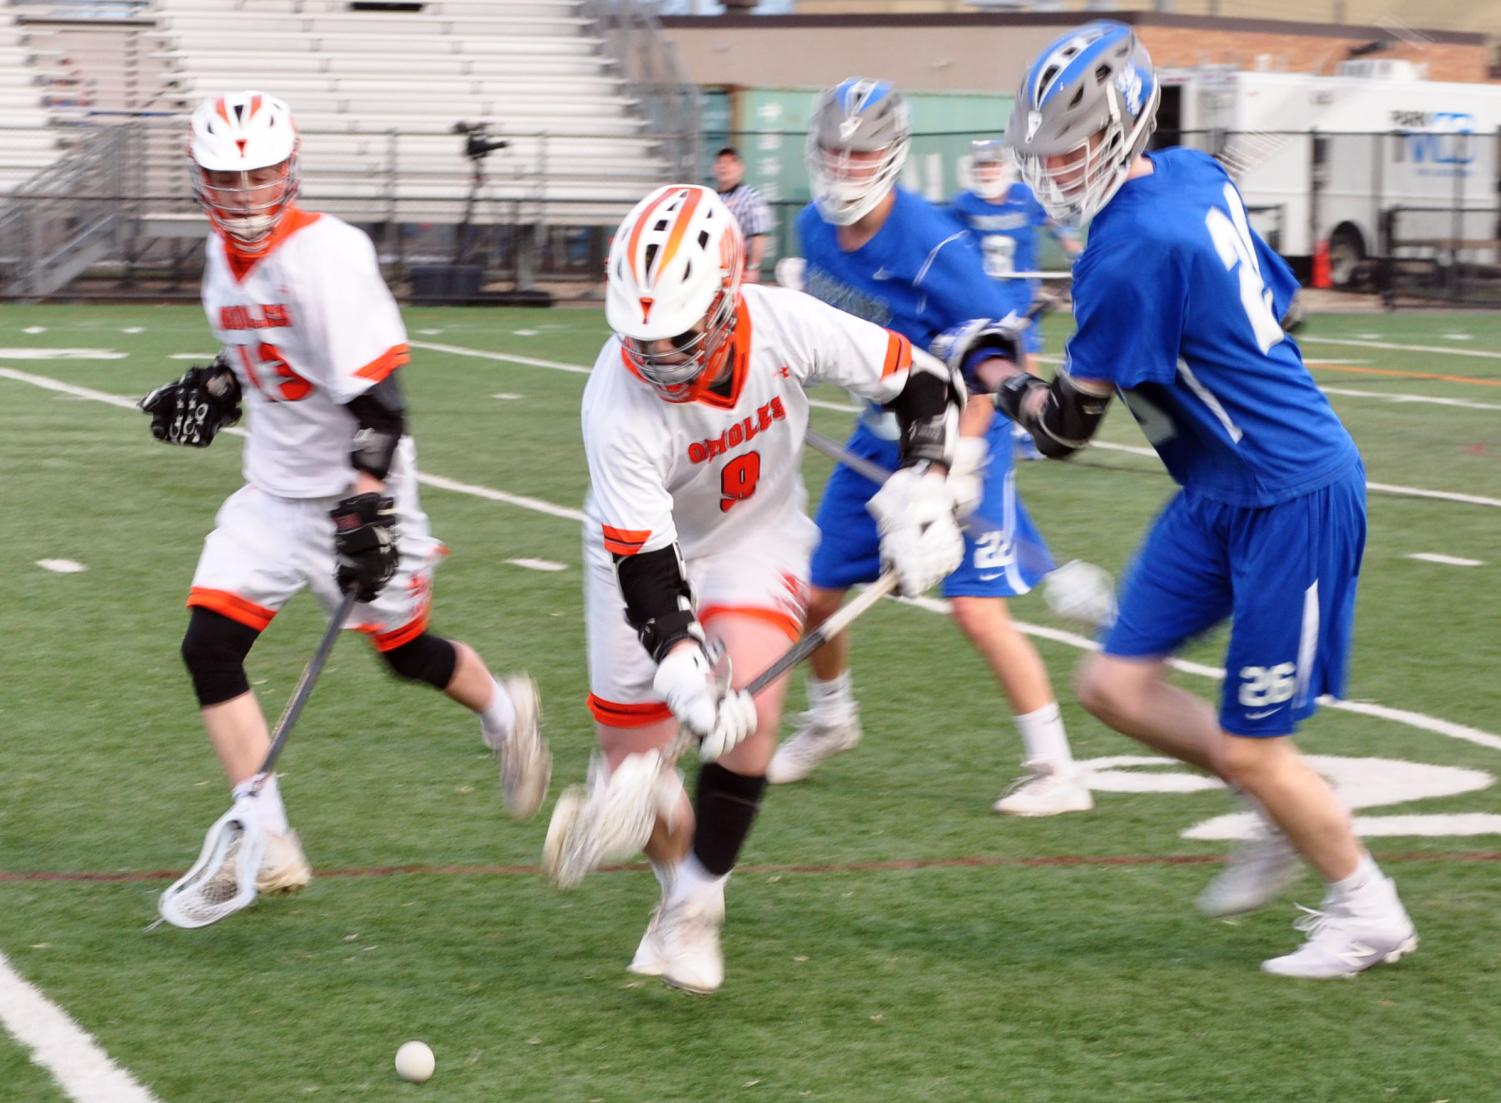 Junior Flynn Spano looks to recover the ball and avoid Hopkins attackers. After allowing four goals in the first quarter, Park allowed five more goals, and scored three, over the next three periods. The final score of the game was 4-9 Hopkins.